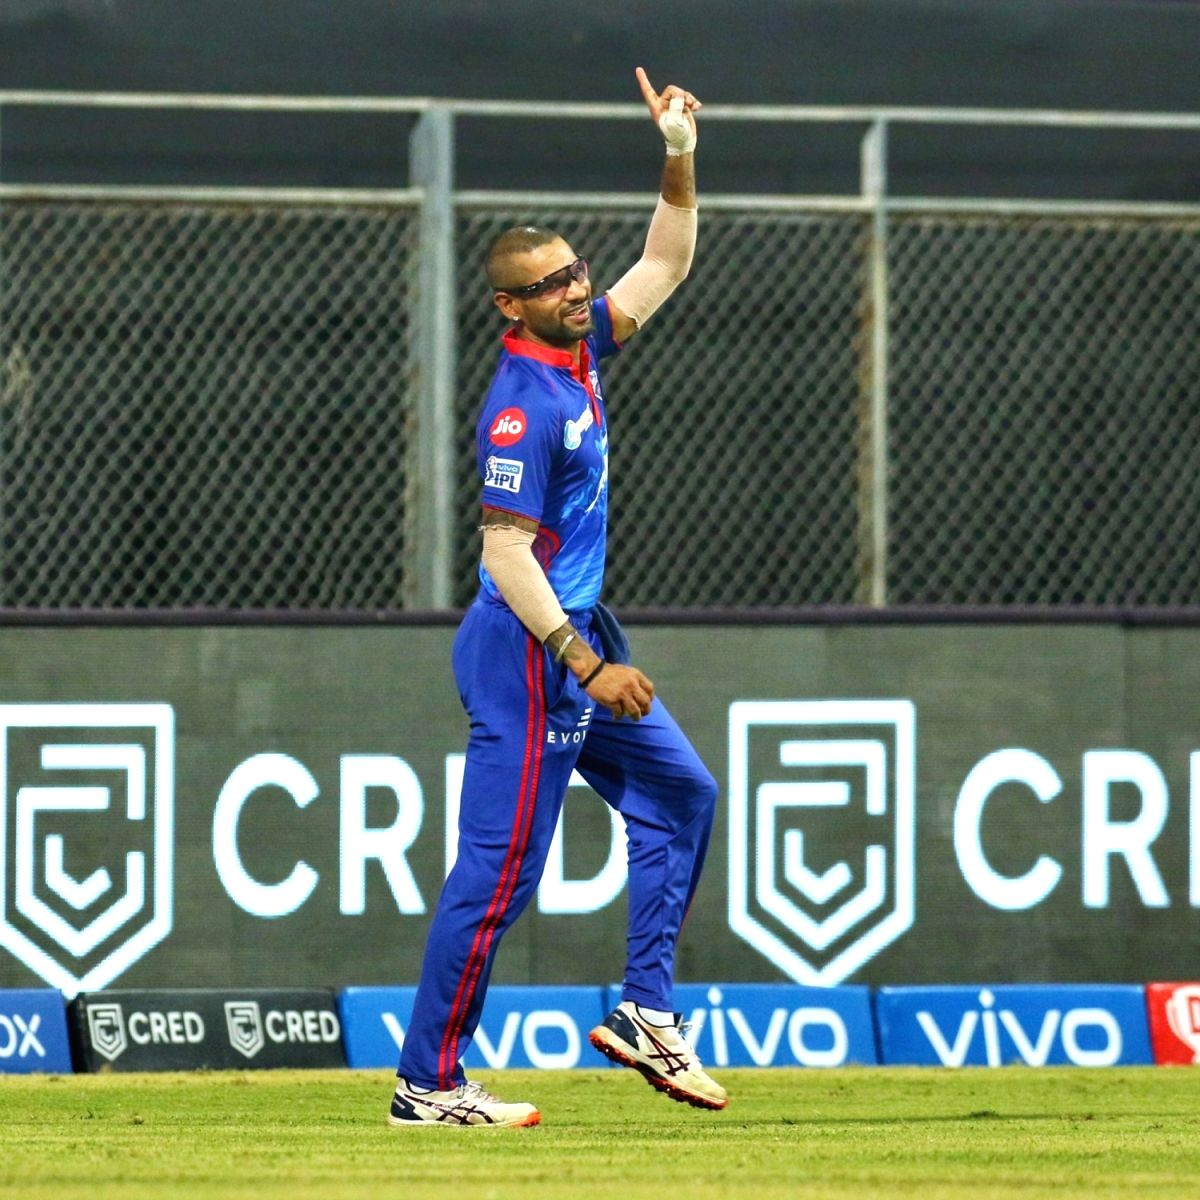 DC's Shikhar Dhawan appeals to people to donate blood plasma.(photo:BCCI/IPL/Not for sale)